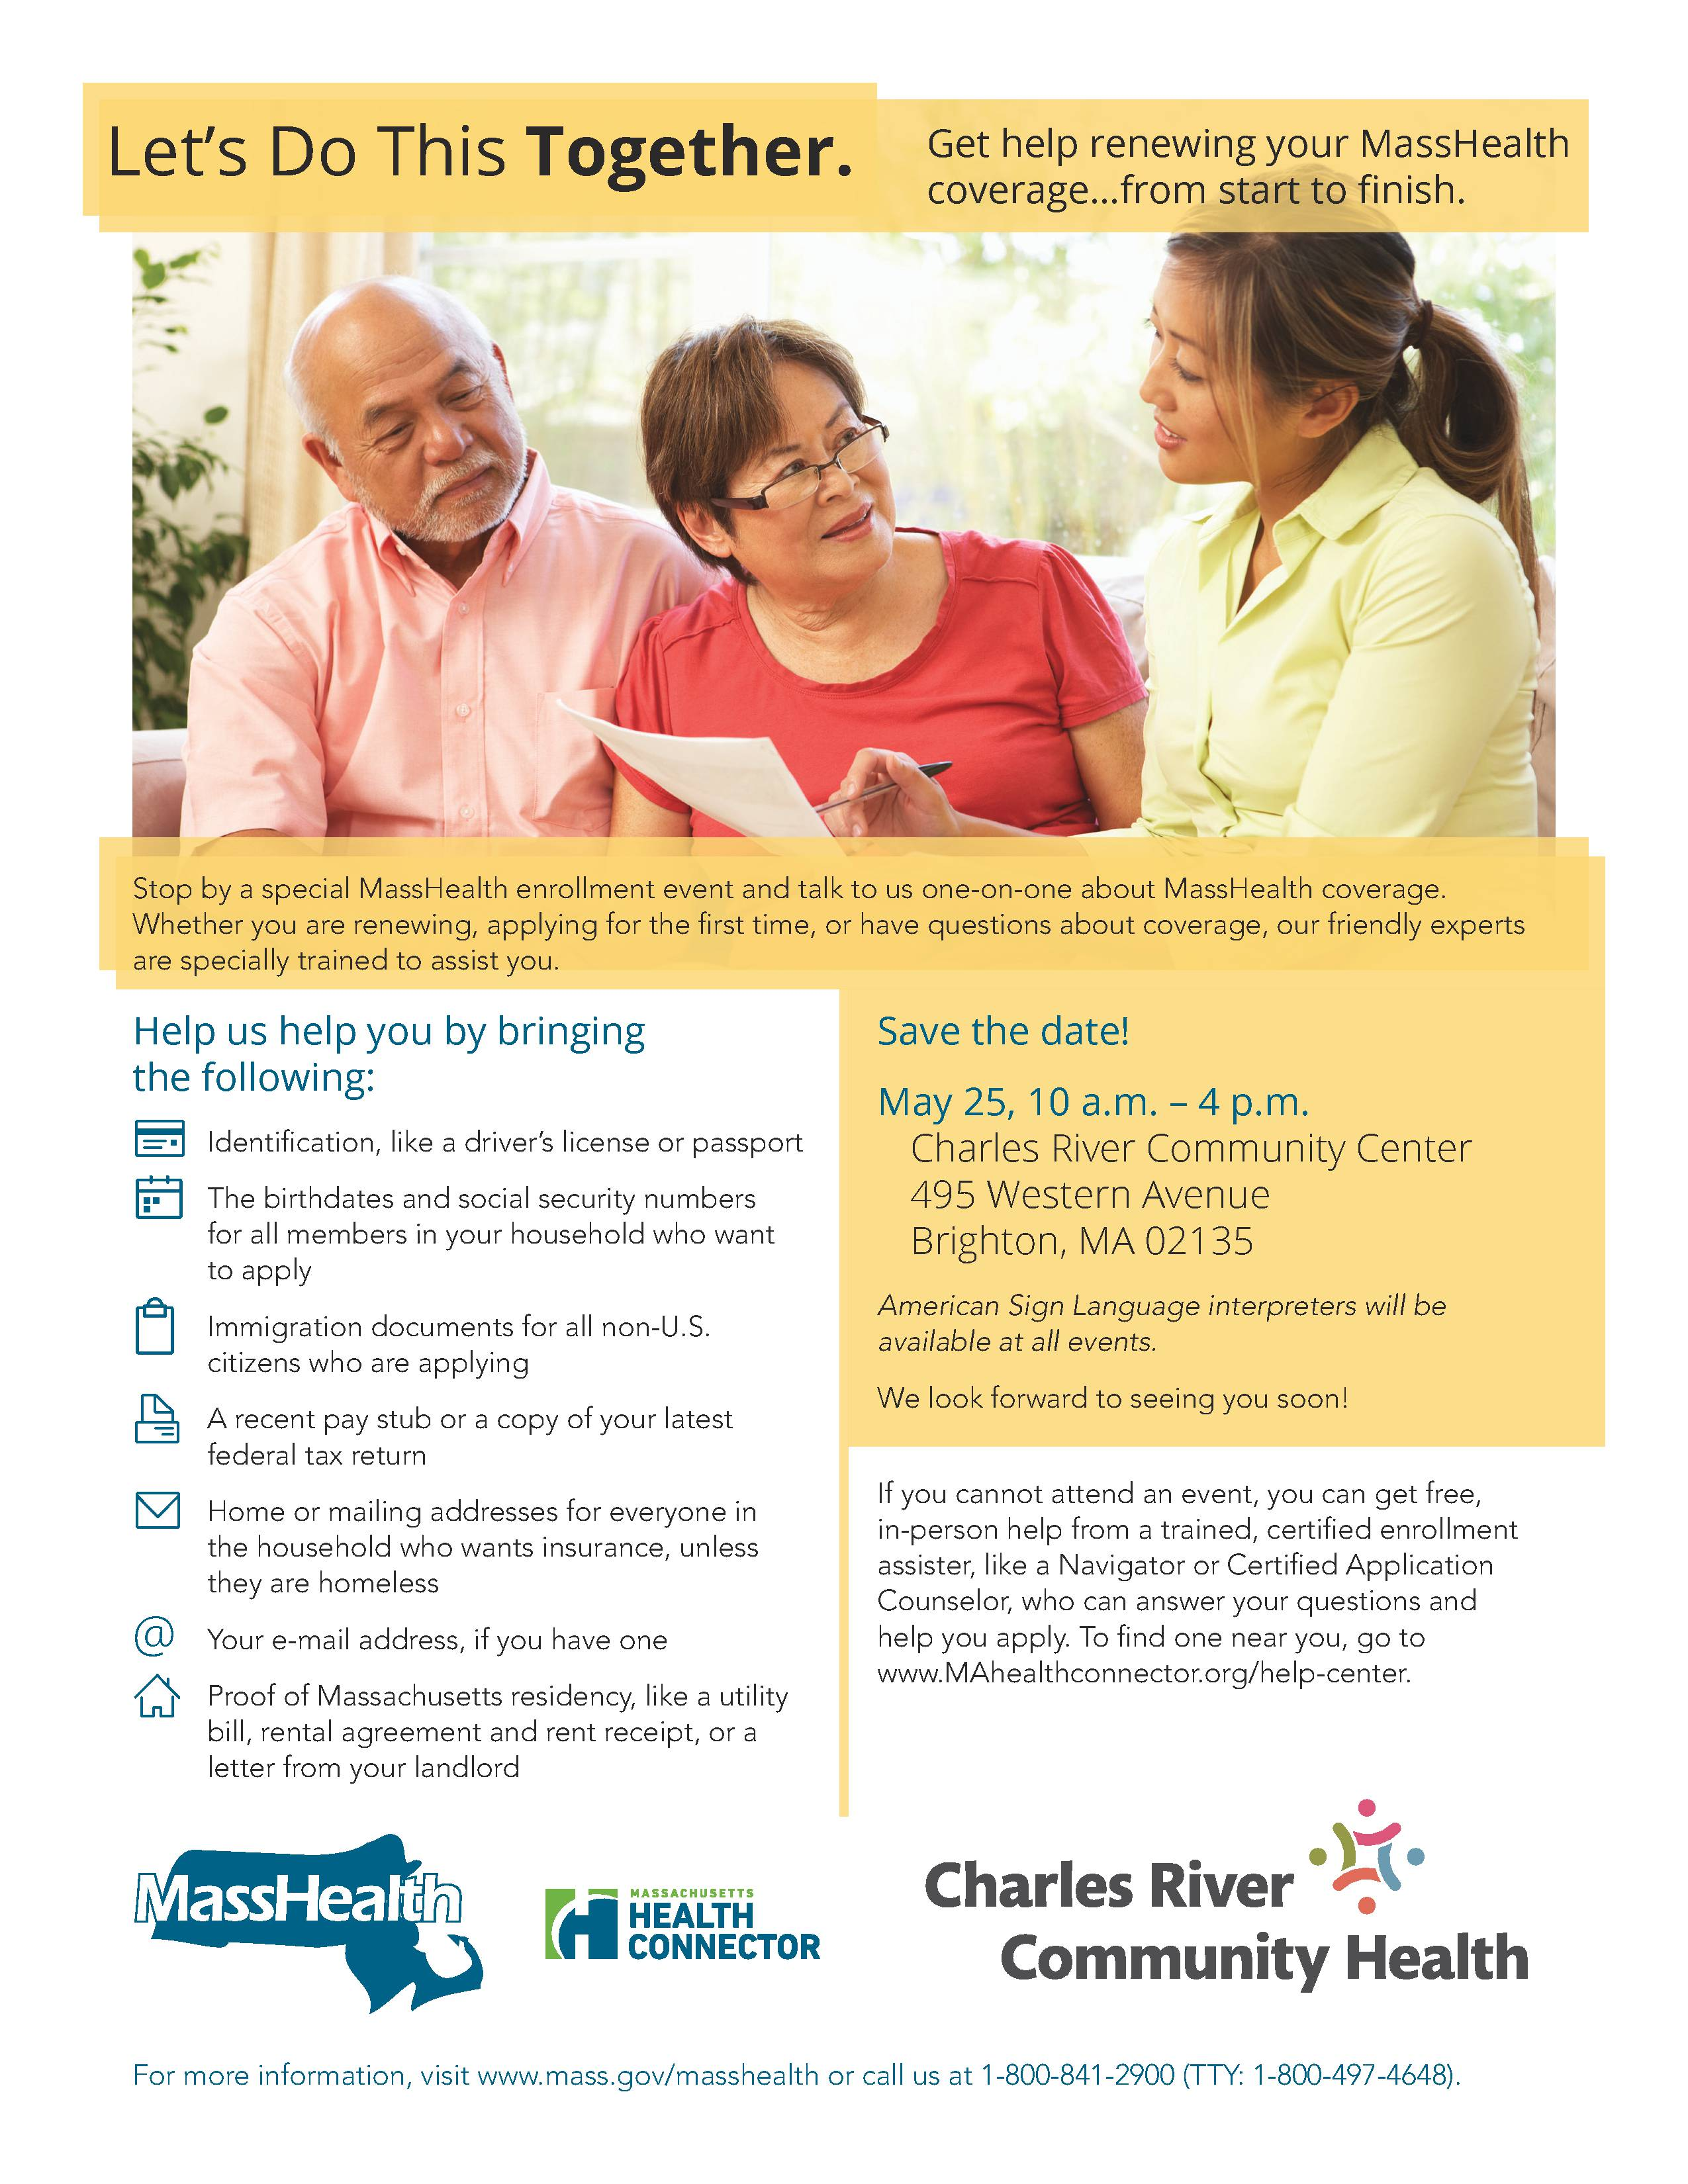 MassHealth Enrollment Fair – Charles River Community Health